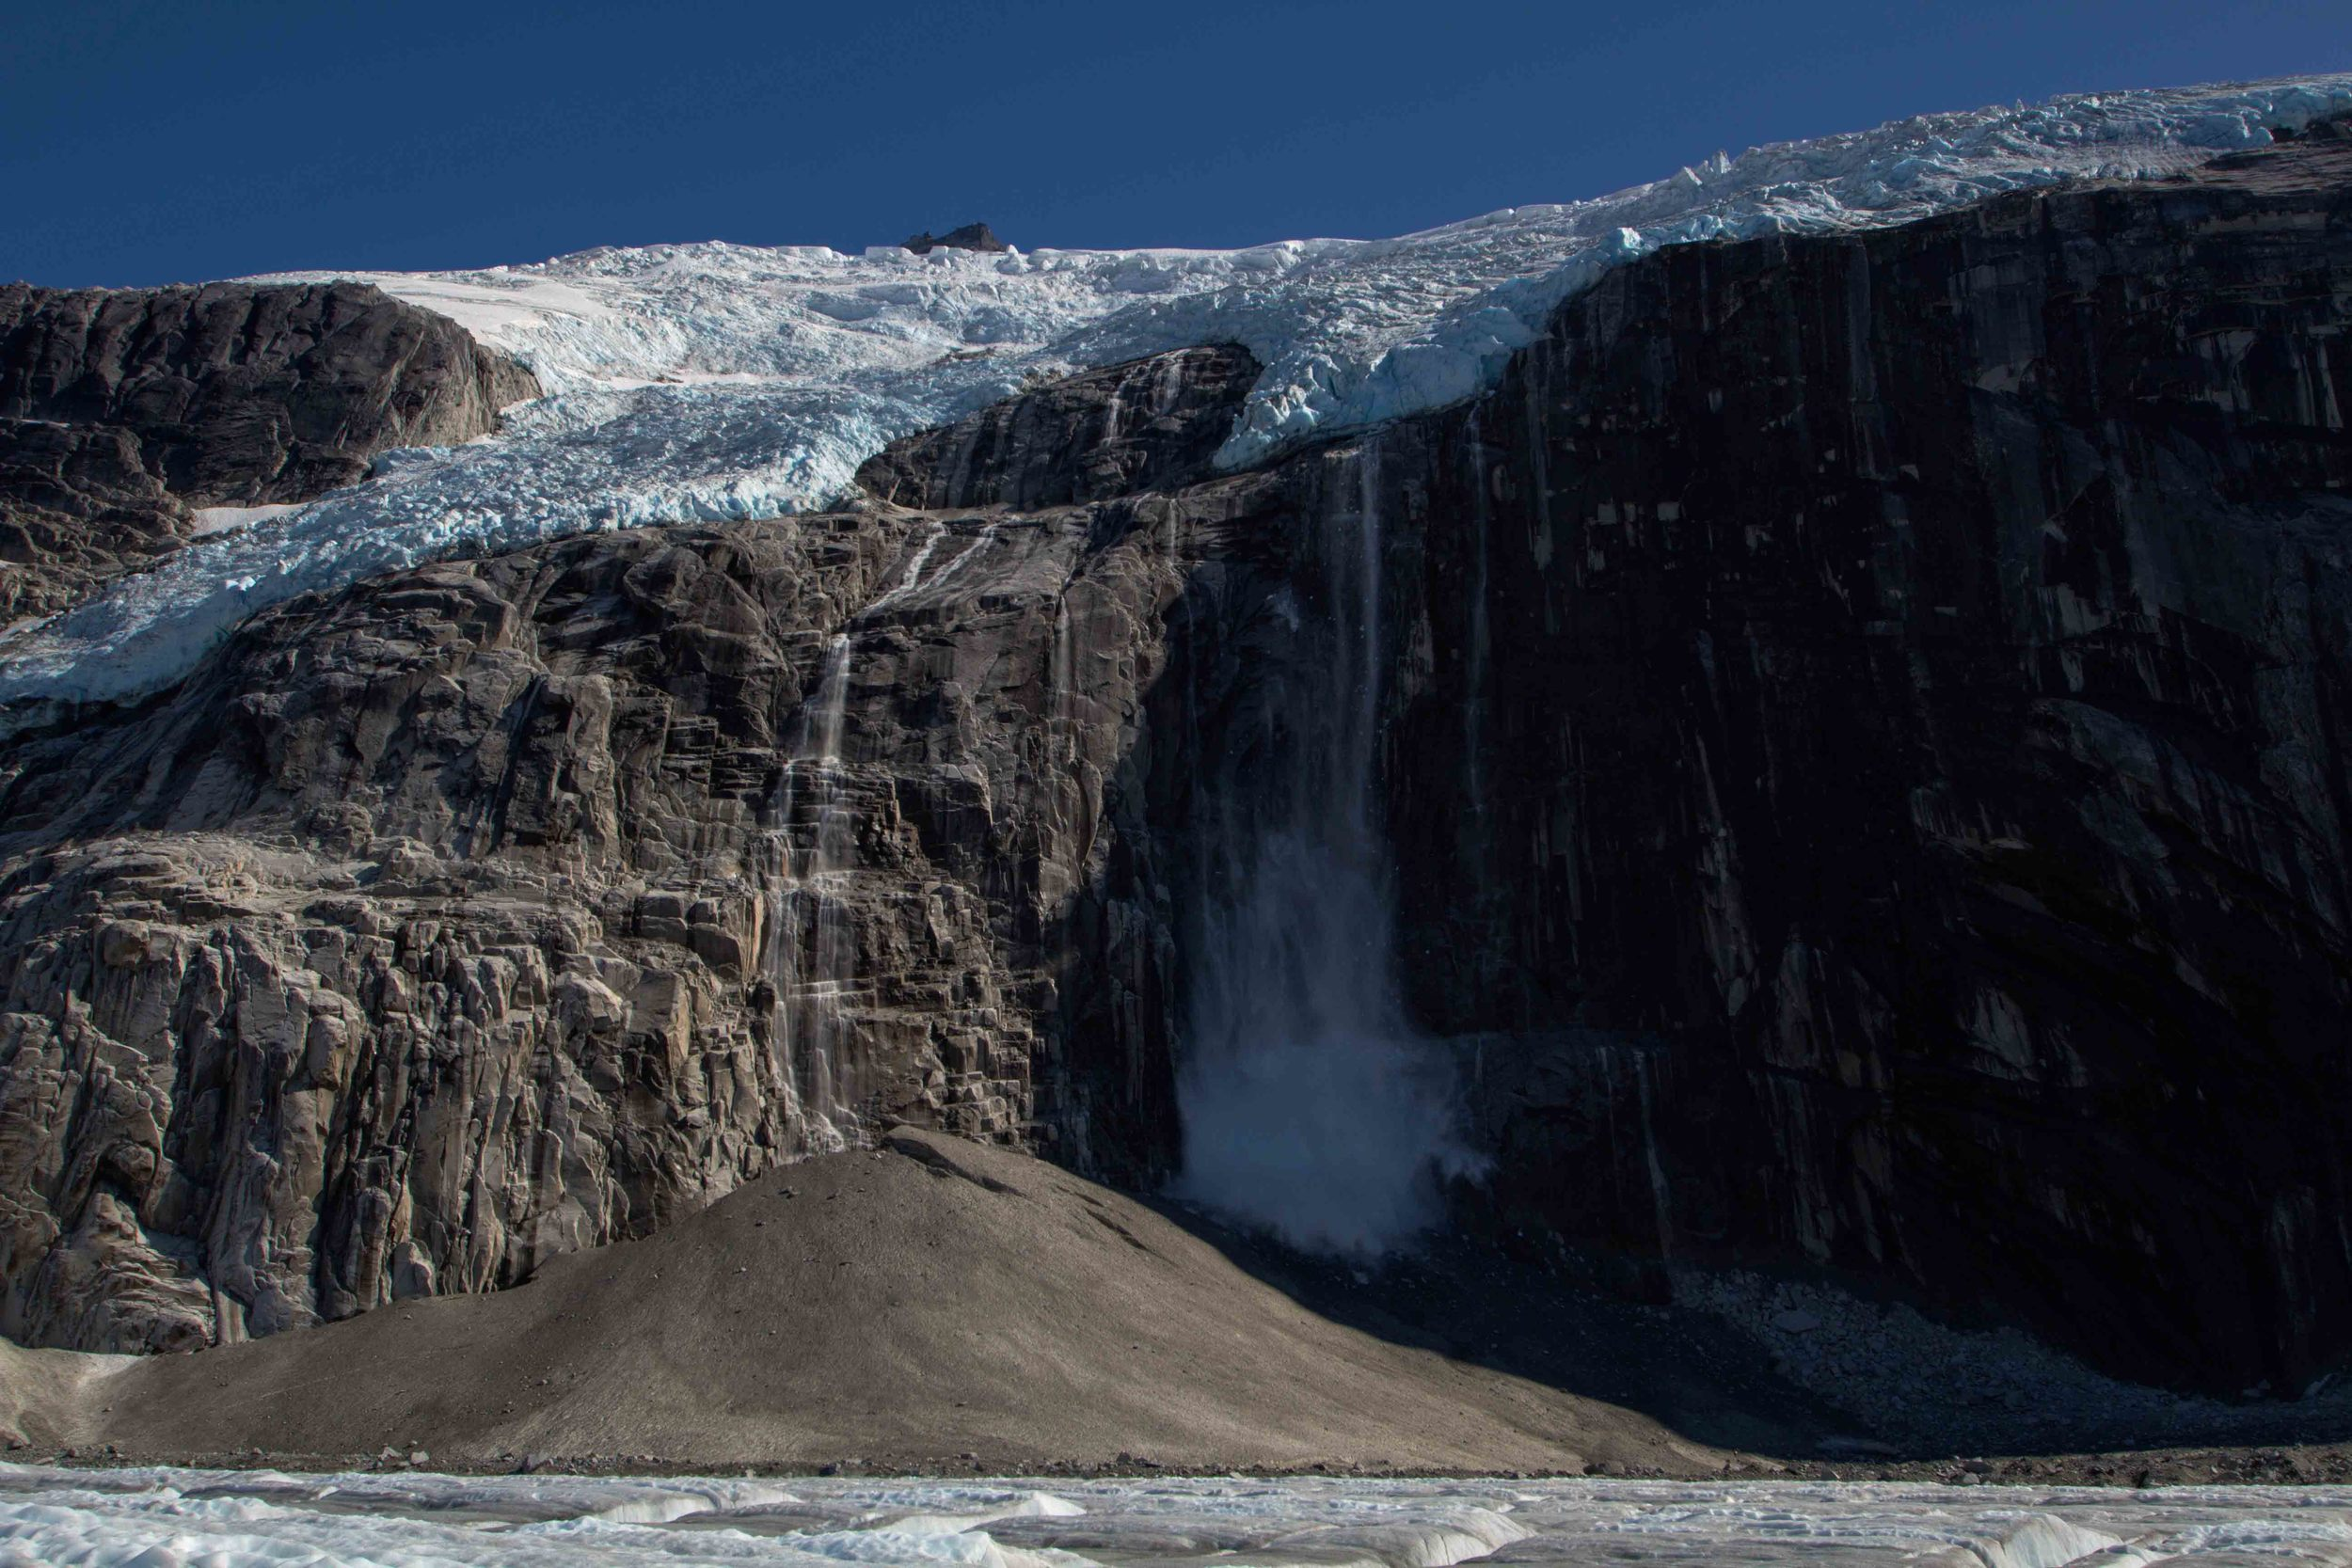 A calving event of one of the hanging glaciers above the Gilkey Trench.  Photo by Adam Taylor.